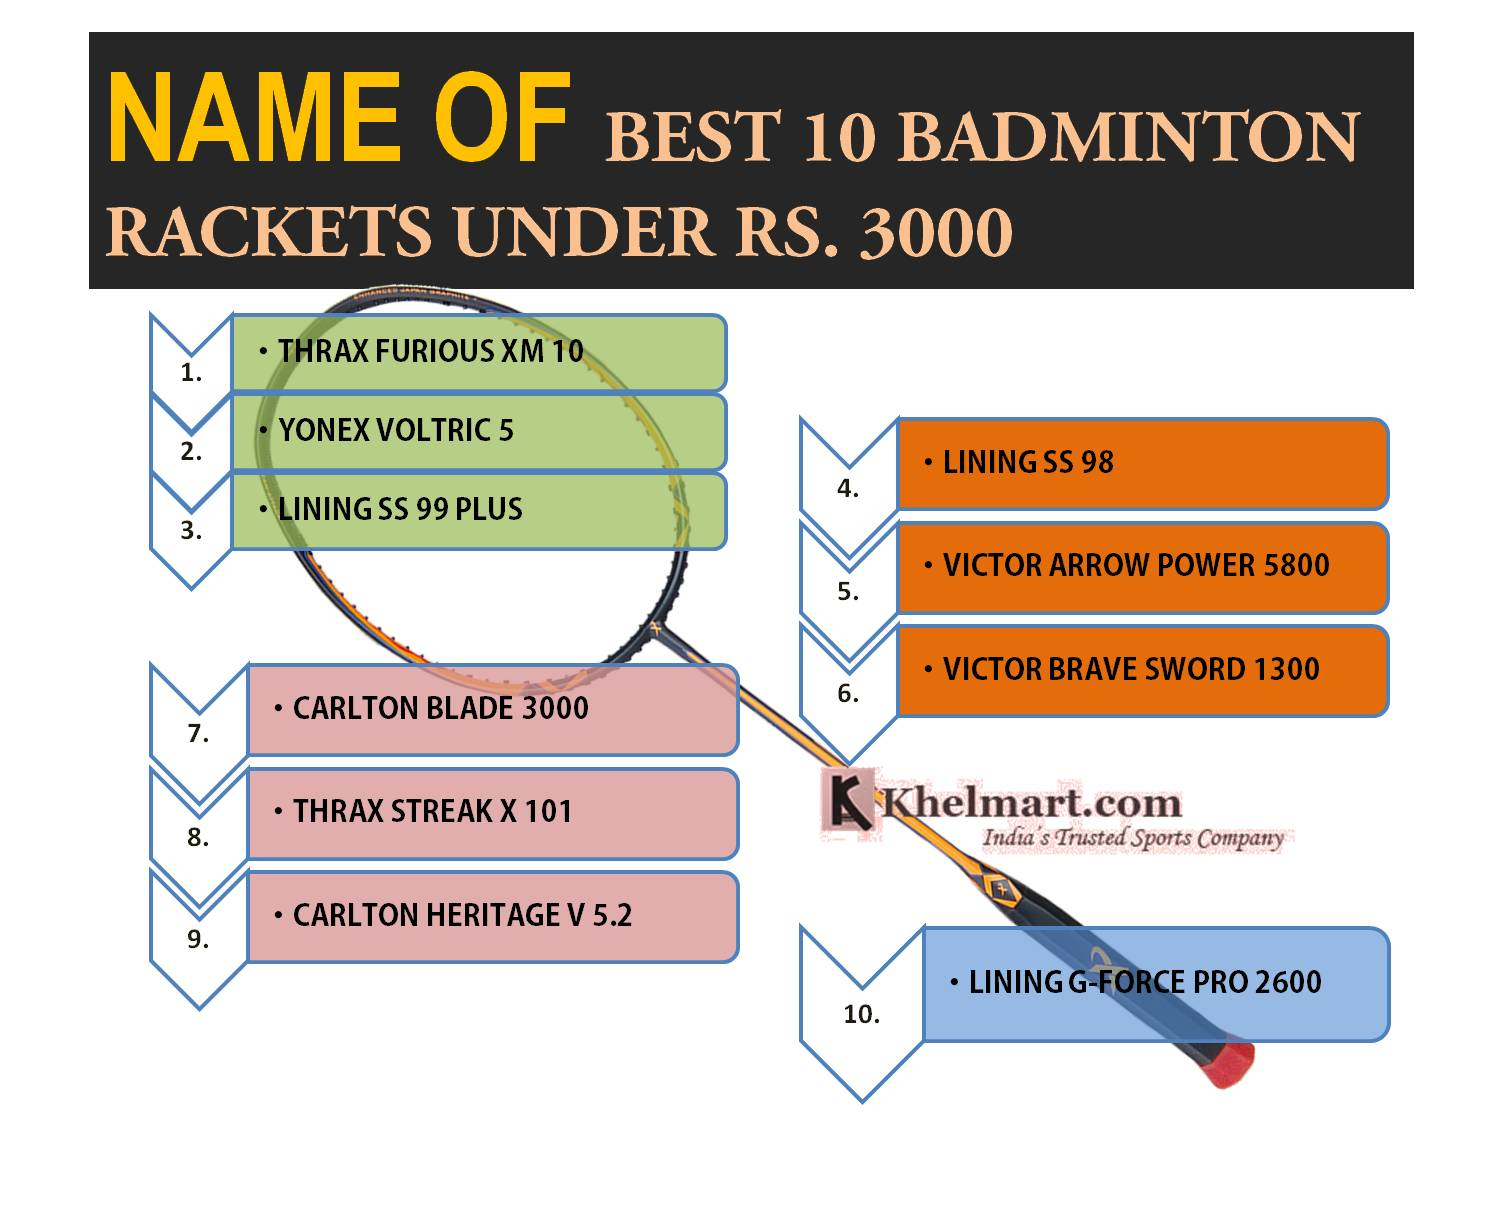 NAME_OF_BEST_10_BADMINTON_RACKETS.jpg